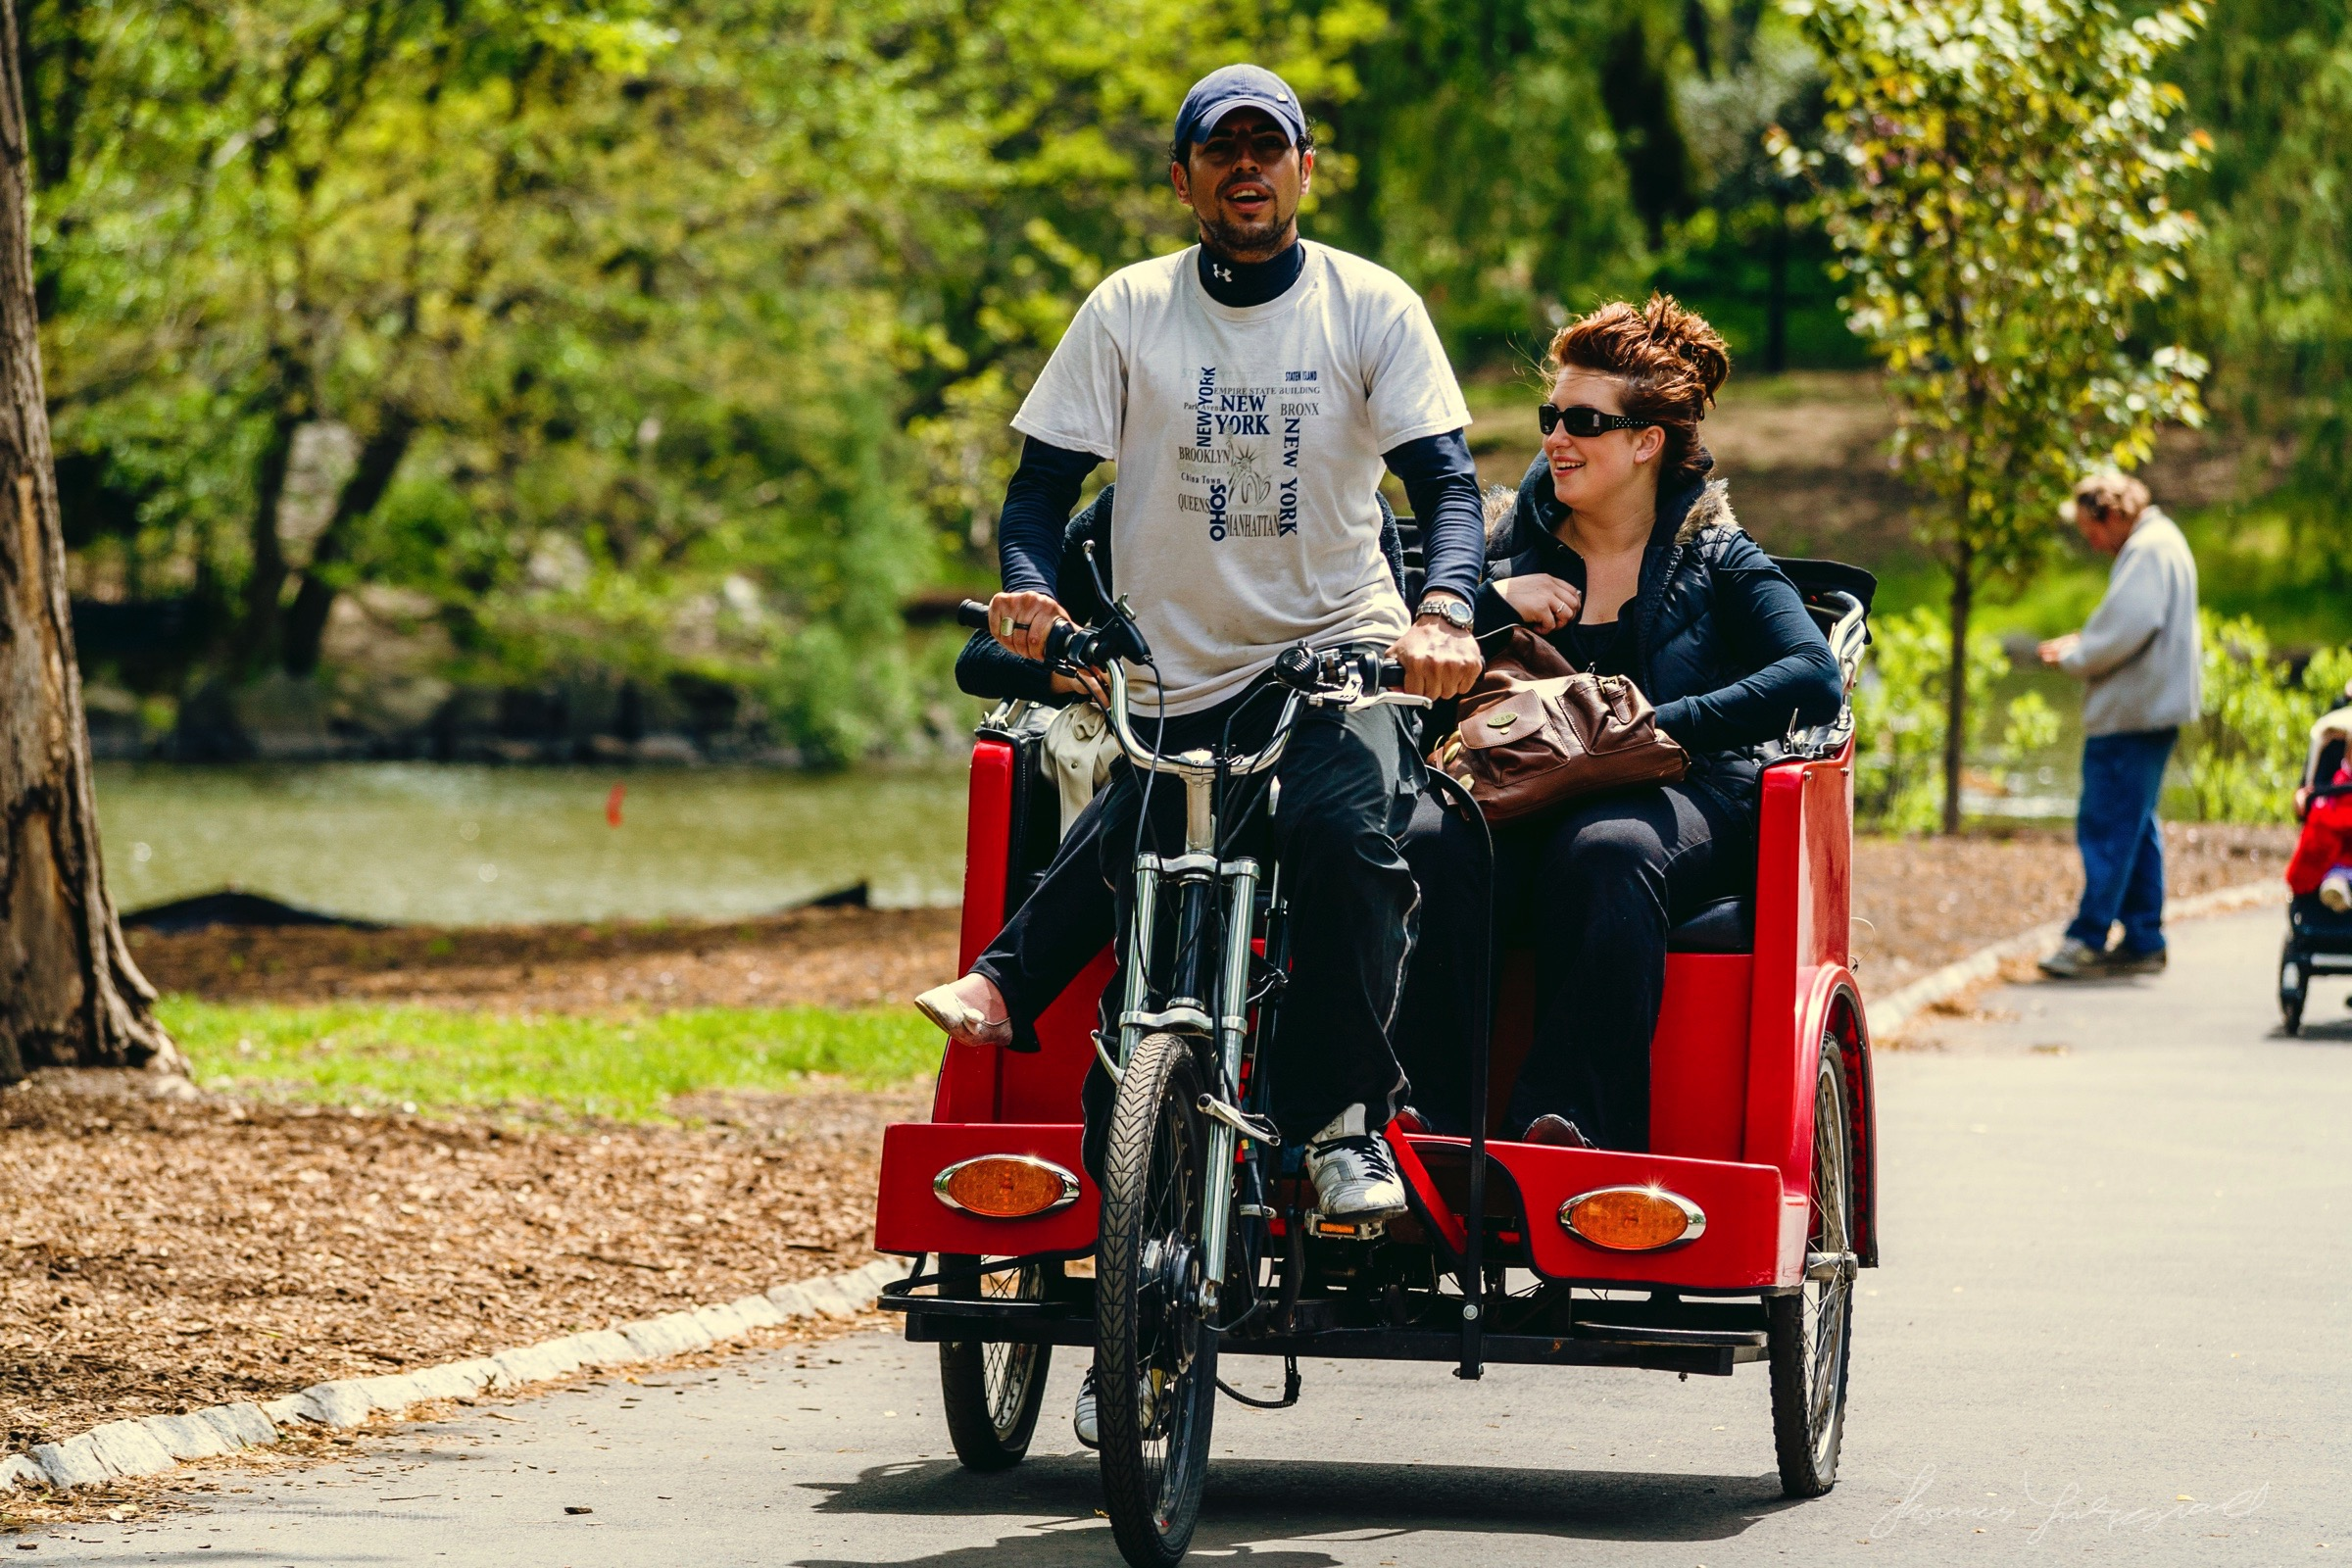 Cycle Cab ride in Central Park